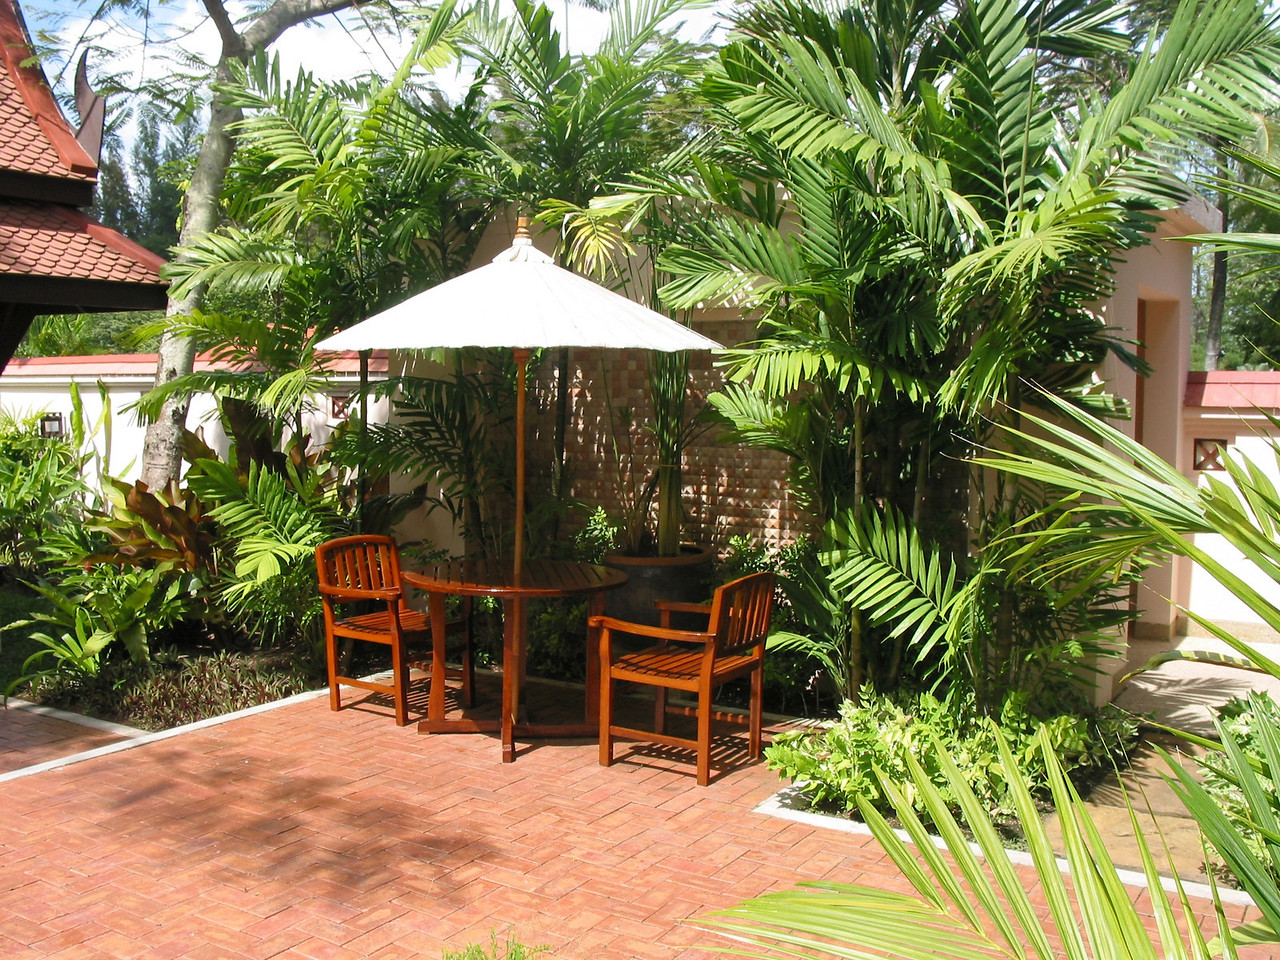 Want to dine outside in your villa, no problem.  There's a nice umbrella and table.